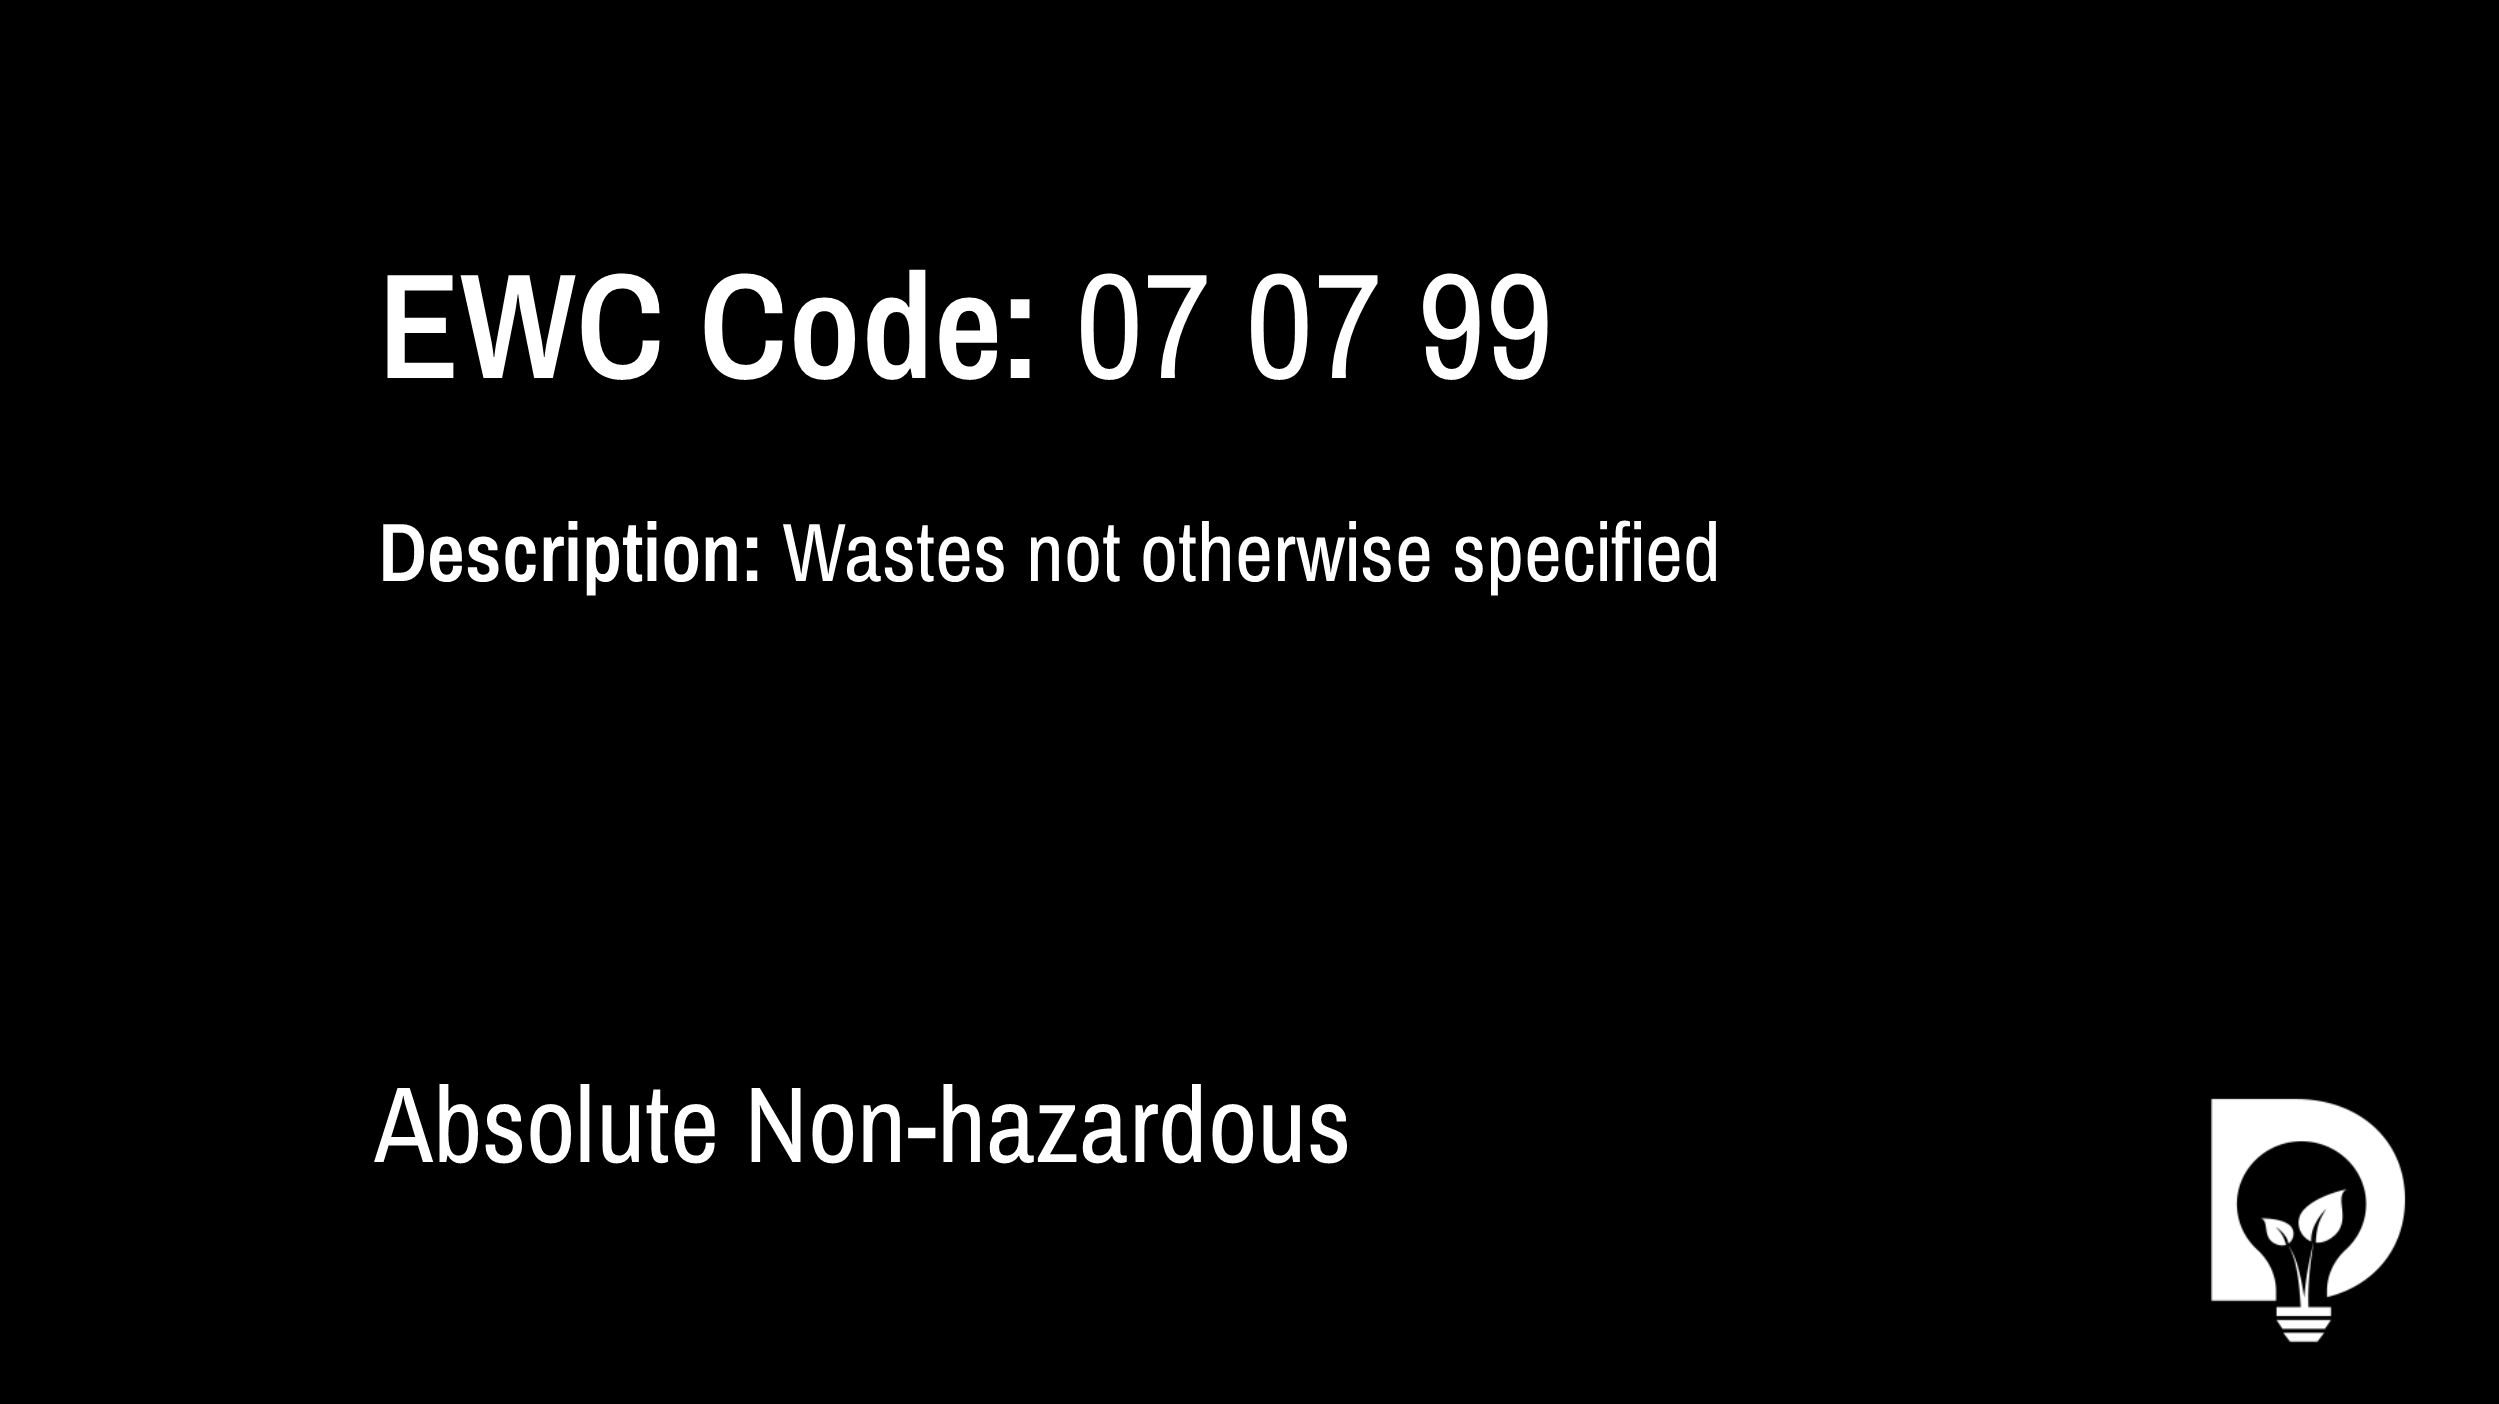 EWC Code: 07 07 99 - wastes not otherwise specified. Type: Absolute Non-hazardous. Image by Dsposal